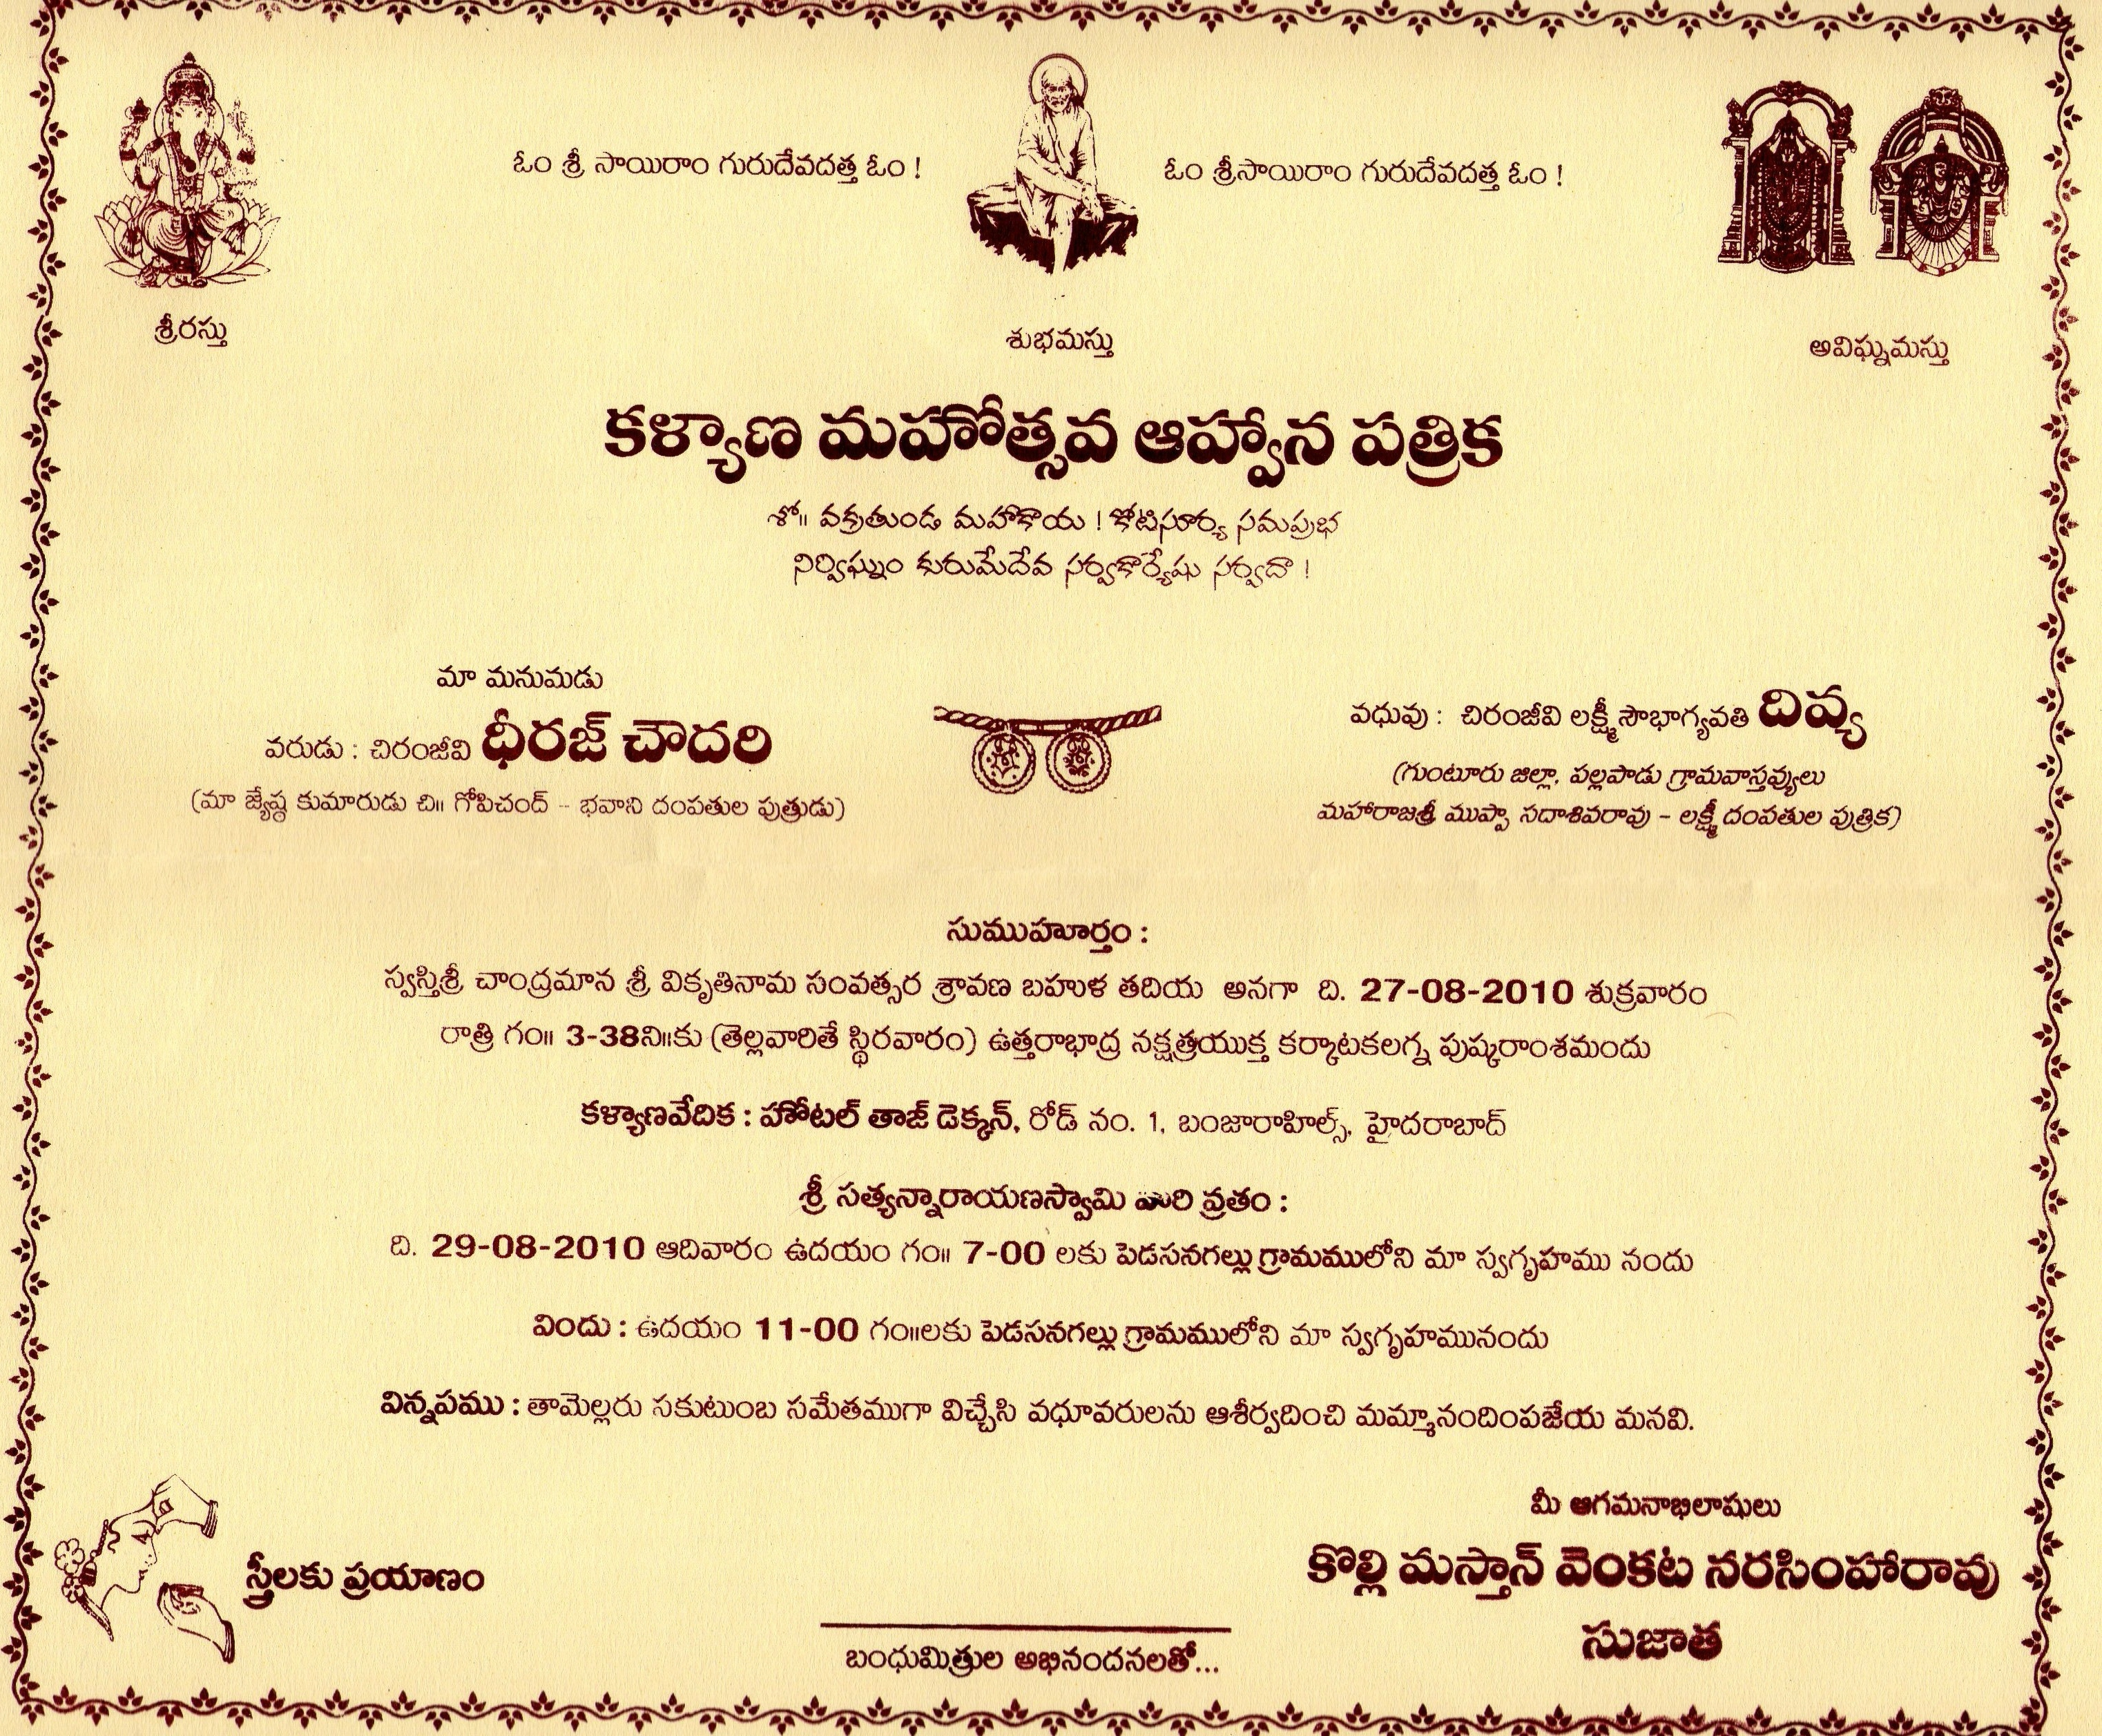 Funny wedding invitation in telugu matik for for Wedding invitation images in telugu